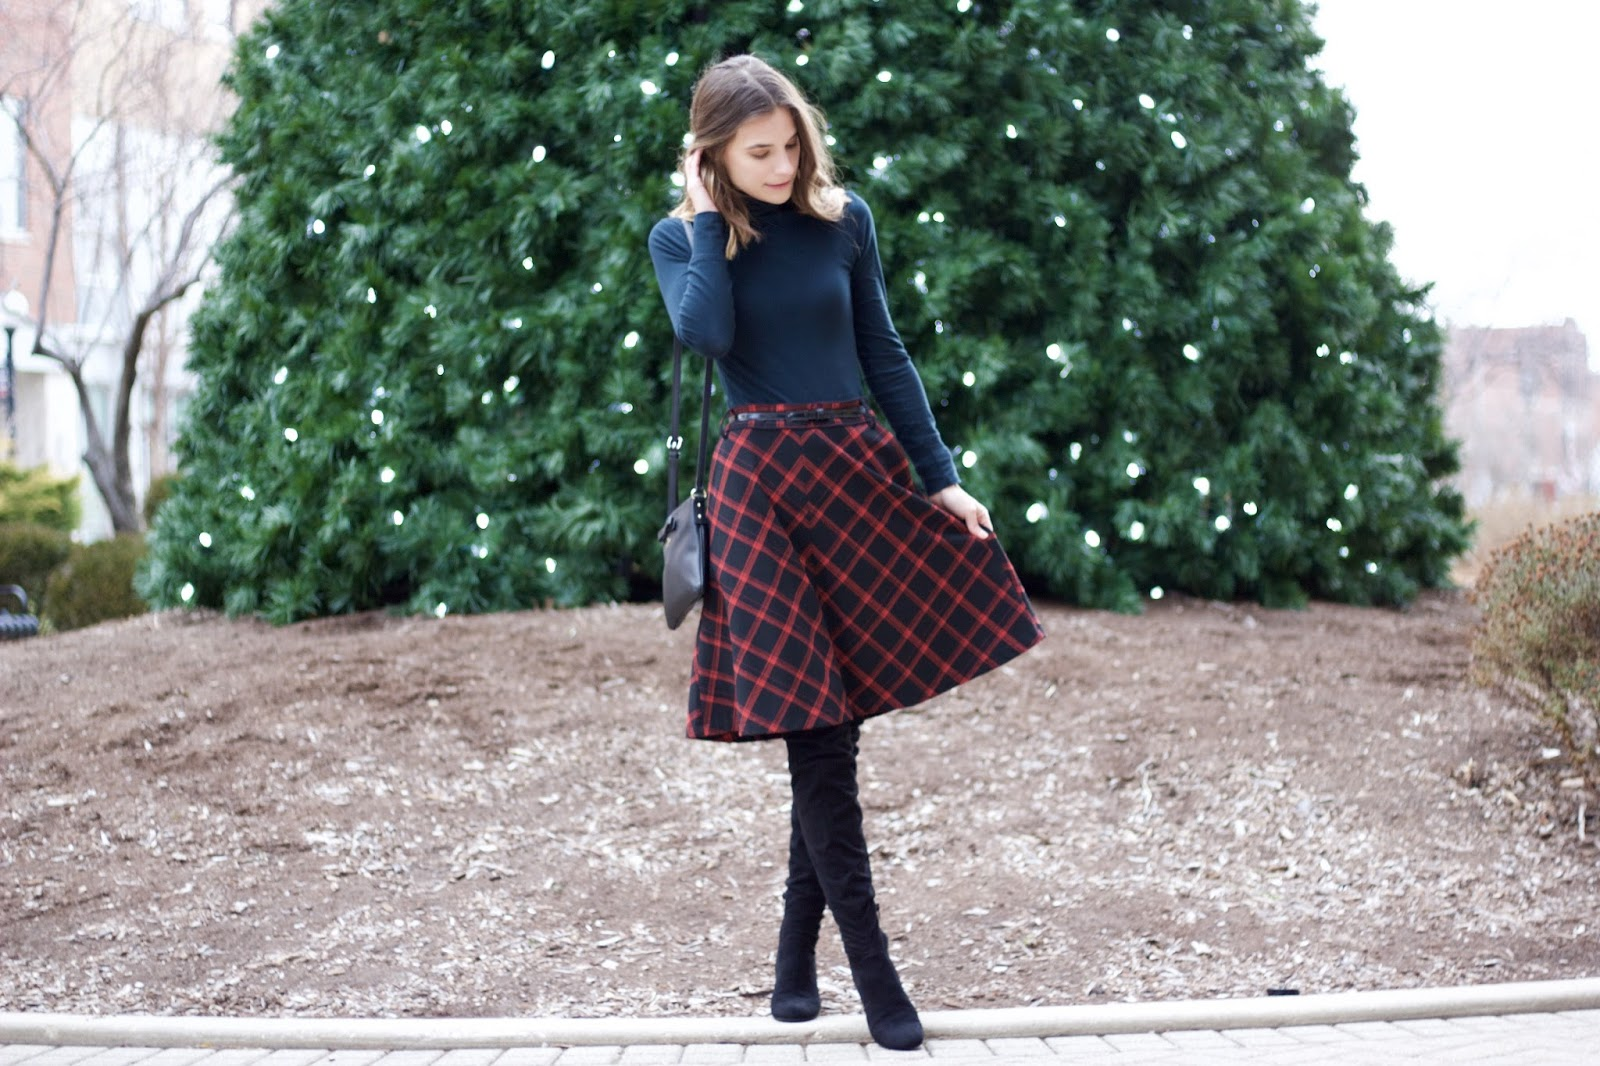 red and black buffalo check high waisted skirt from Urban Outfitters